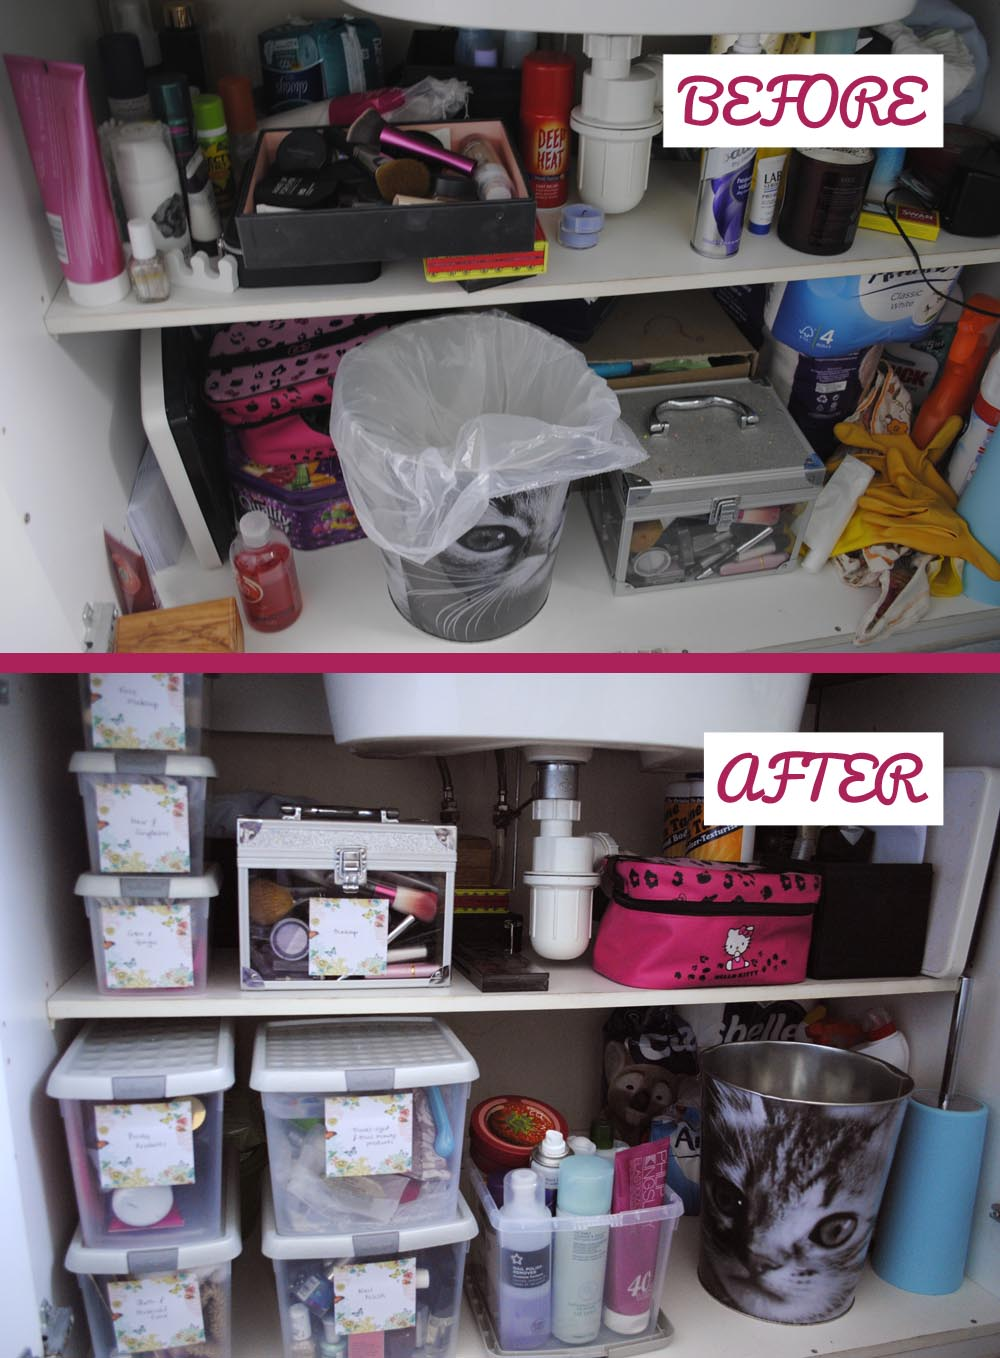 Before and After pictures of bathroom organisation storage boxes ideas